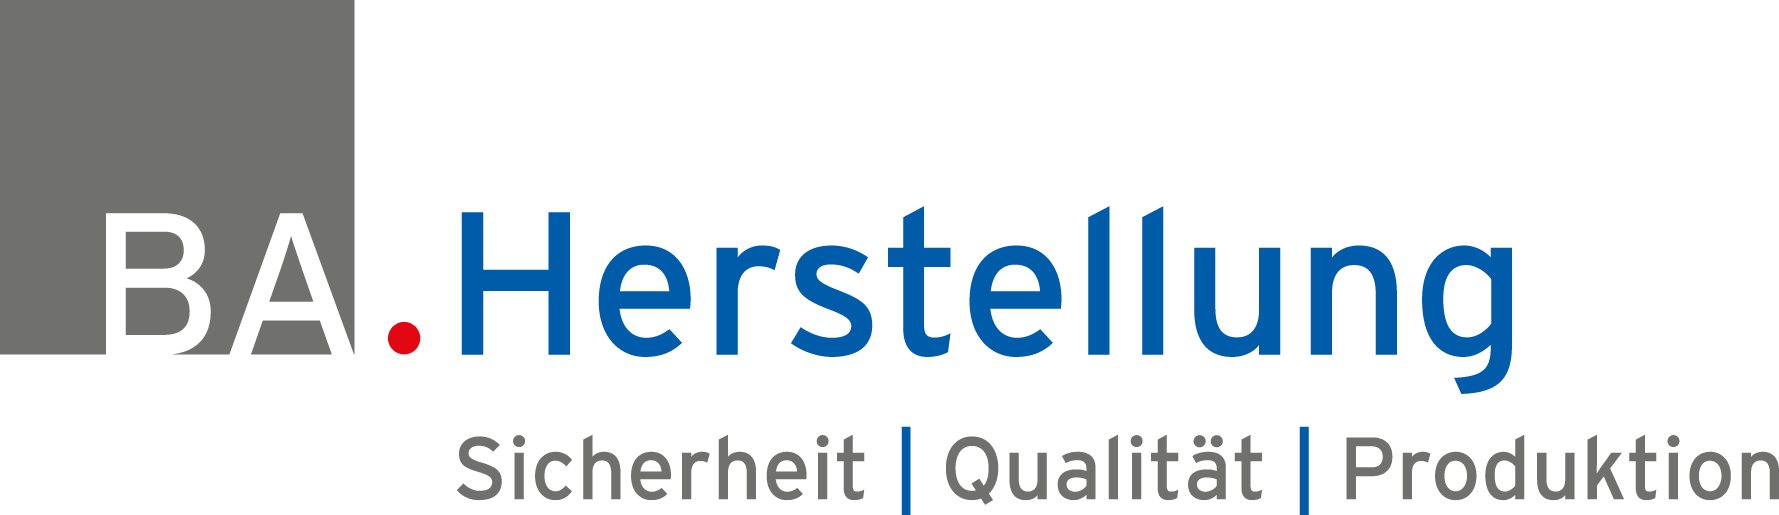 Display of the Logo BA. Herstellung